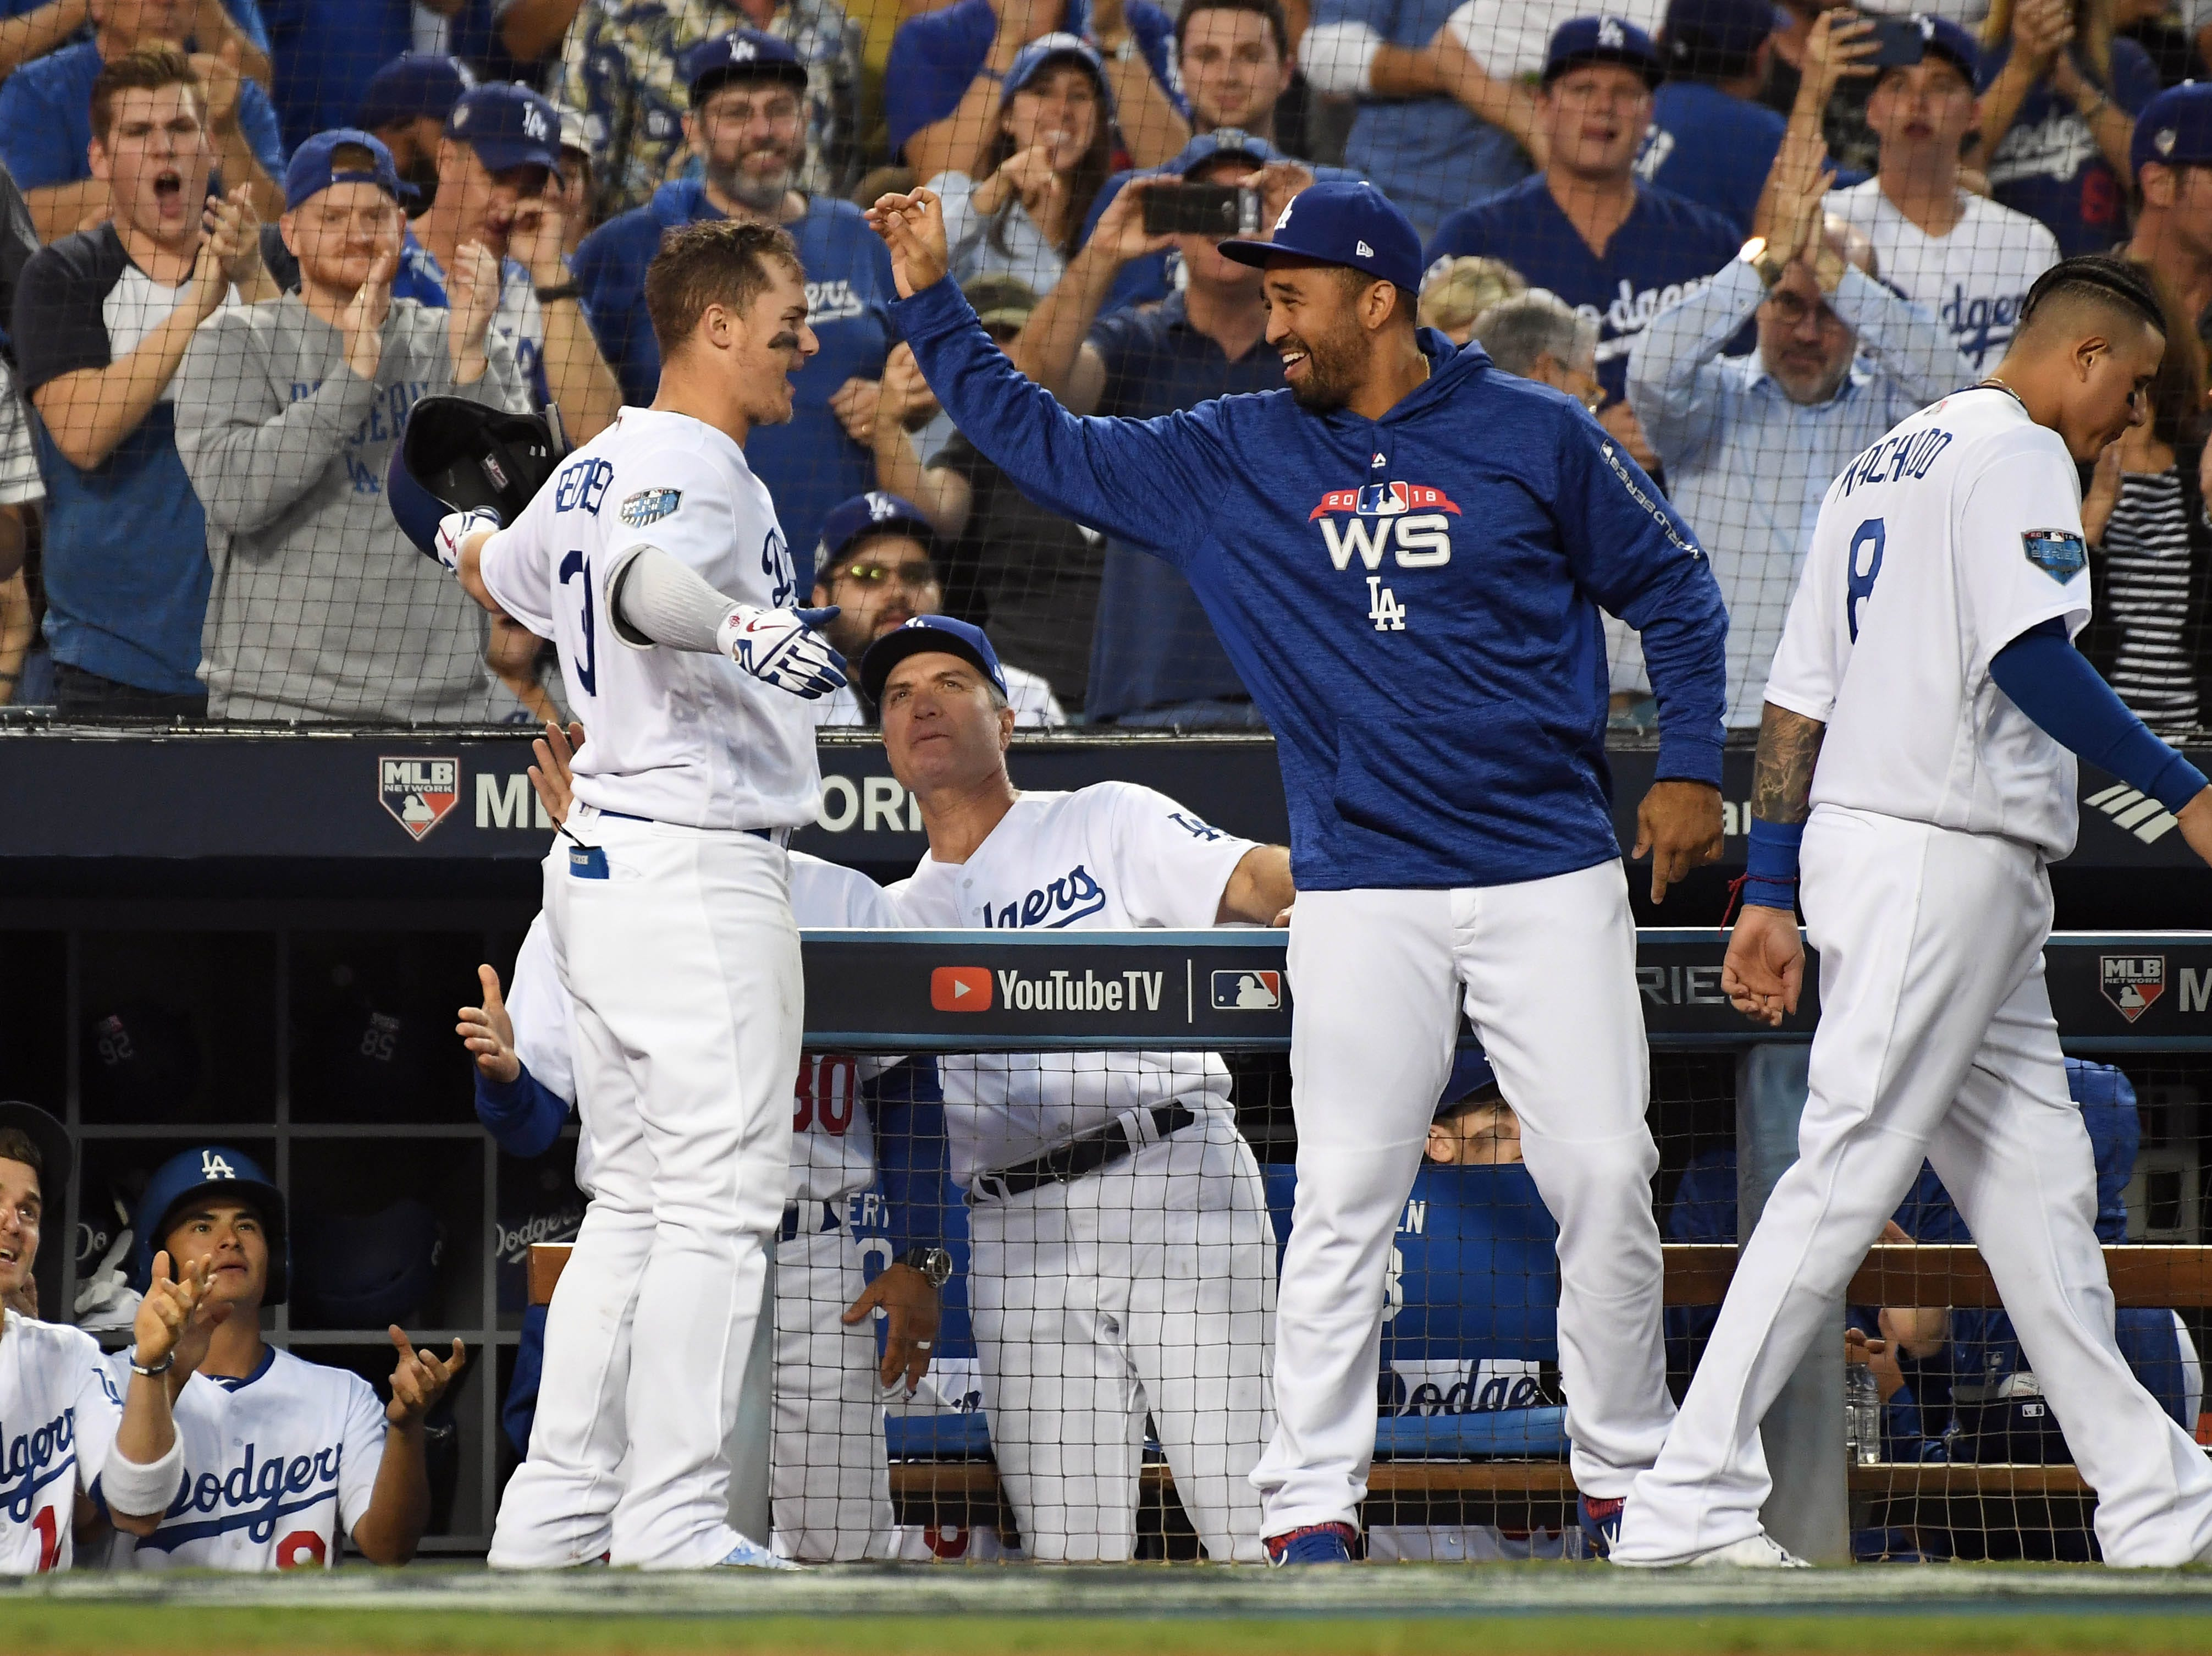 Game 3 at Dodger Stadium: Dodgers players celebrate Joc Pederon's home run in the third.